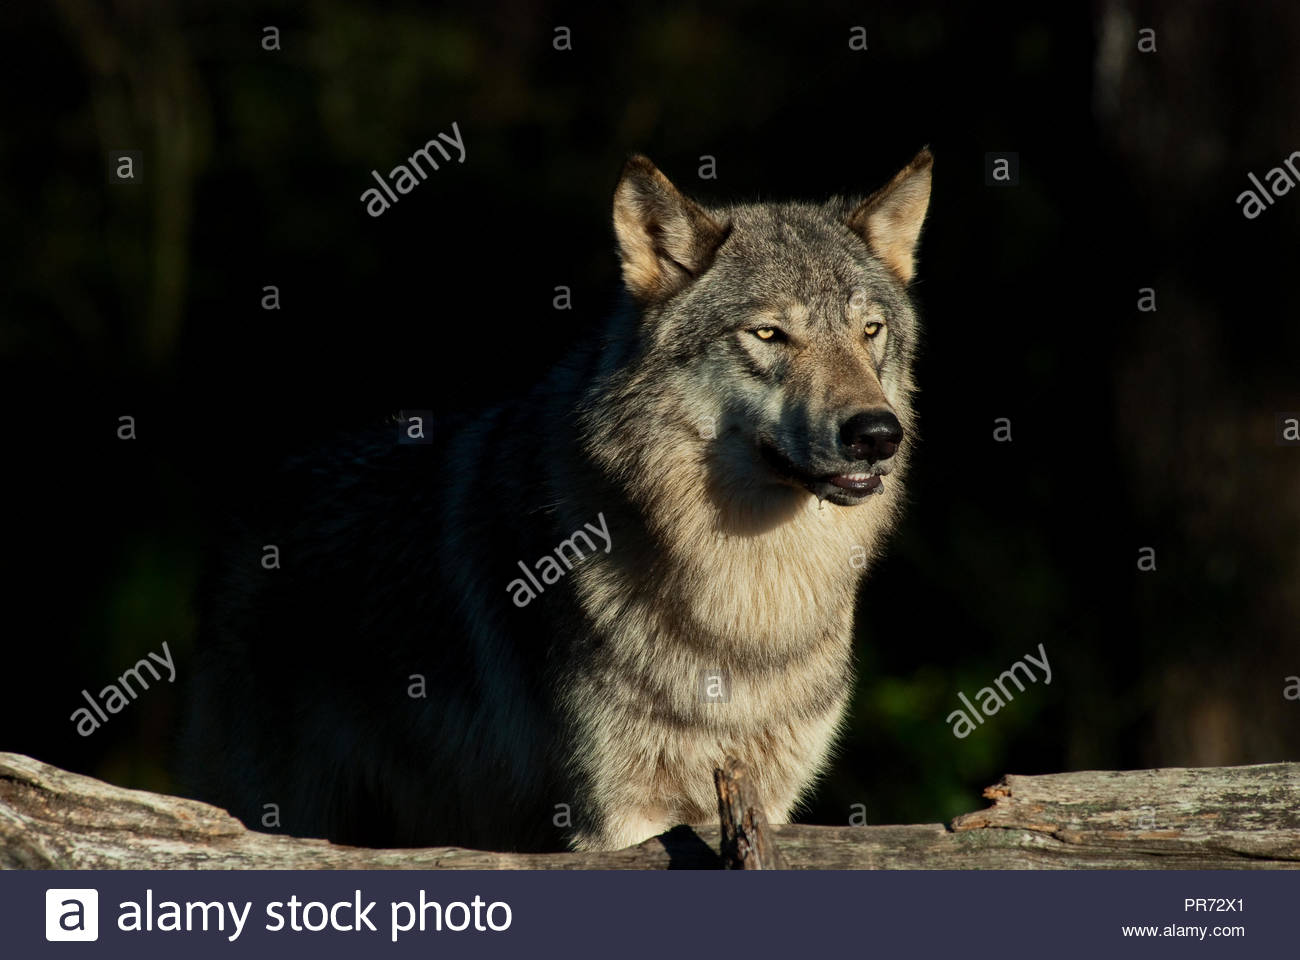 Timber Wolf (also known as a Gray Wolf or Grey Wolf) Surrounded by Shadows - Stock Image